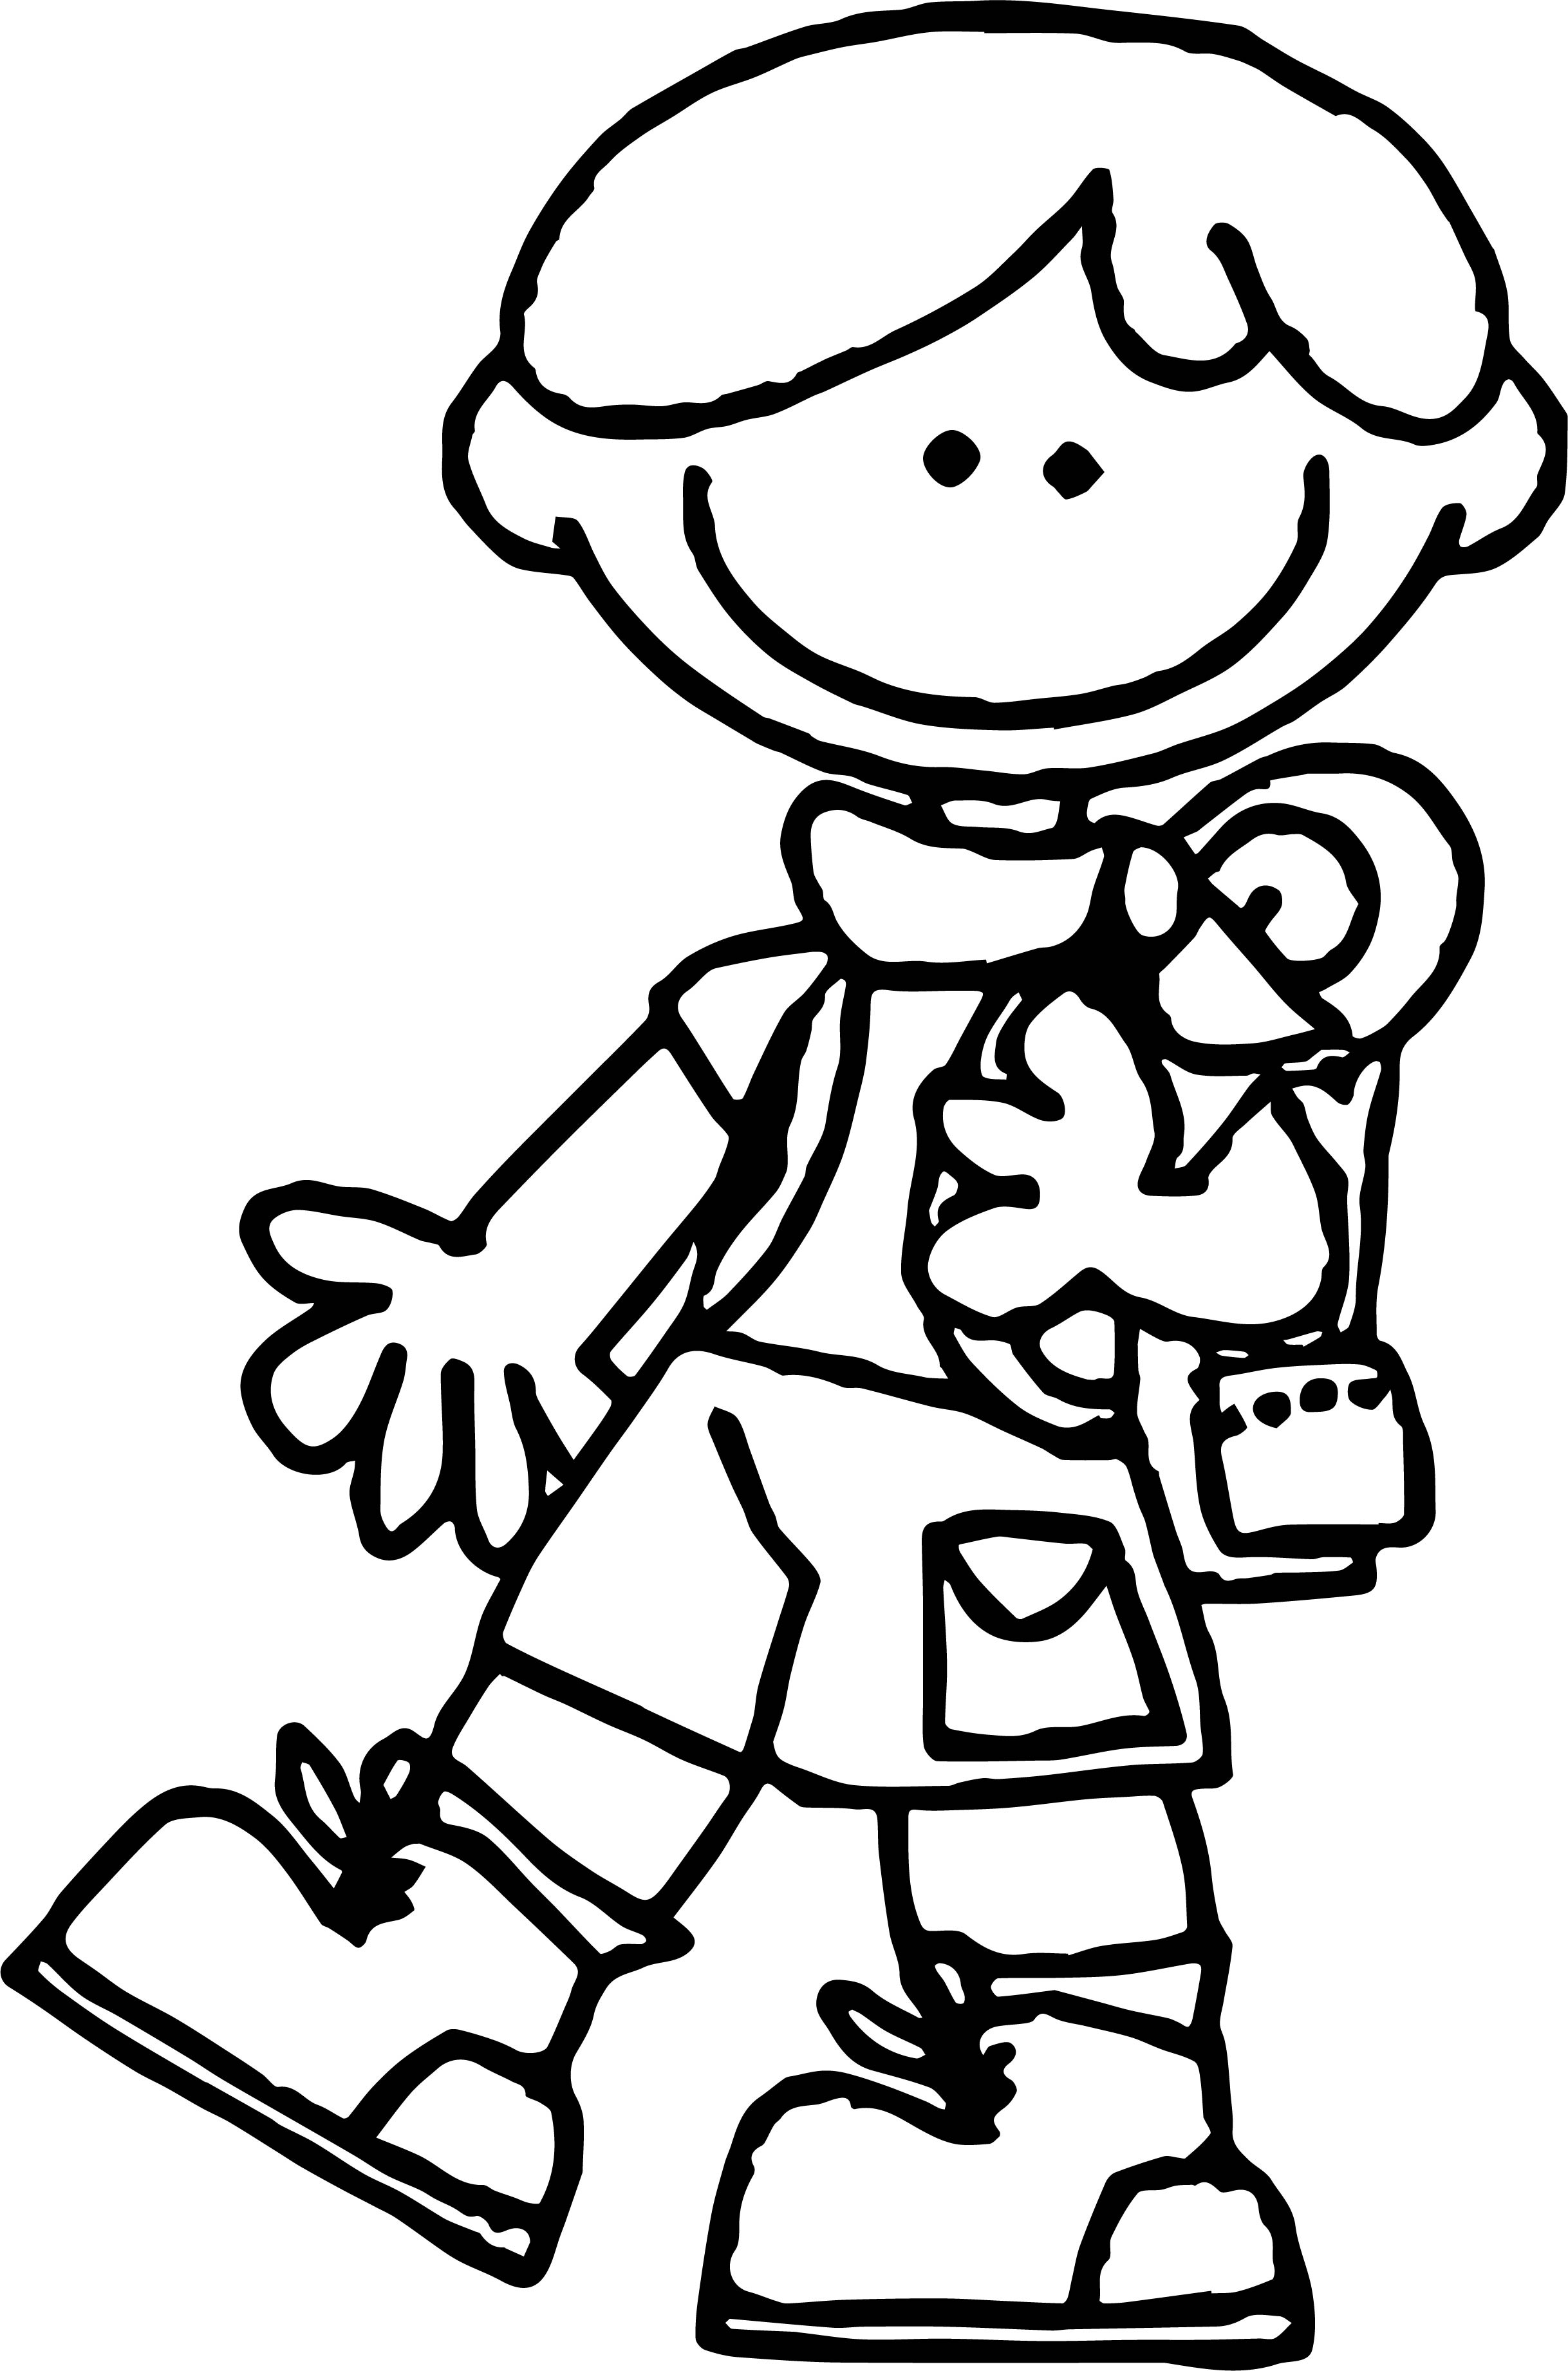 Camping Come Boy Coloring Page | Wecoloringpage.com